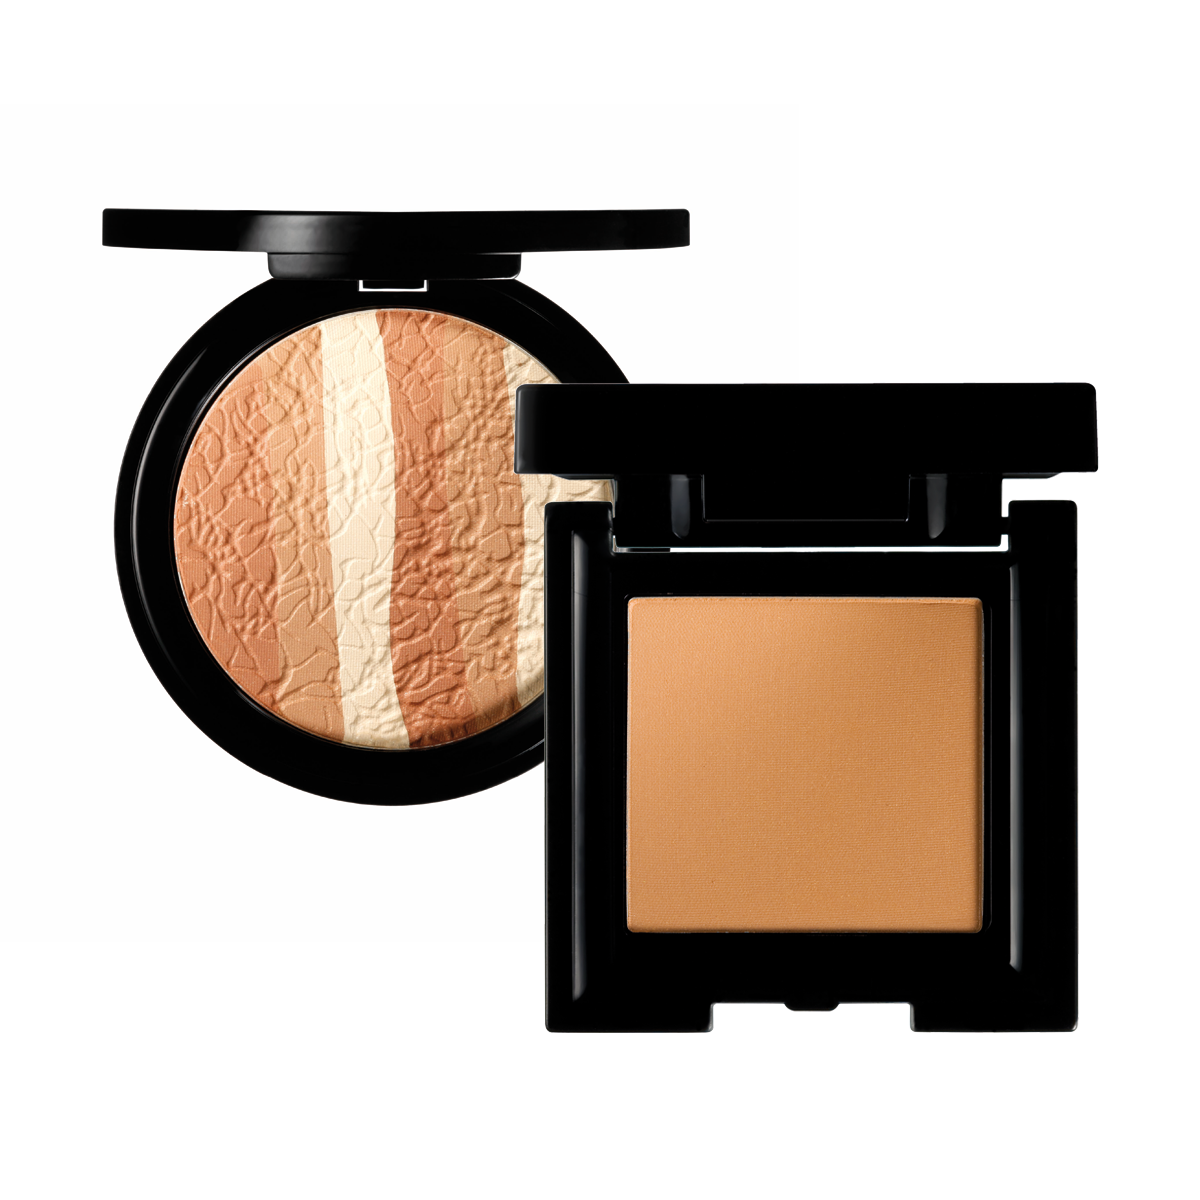 Mii Cosmetics, Style of Wight featured Mii Bronzing Face Finish in Cherish and Jewel, and Glamorous Trio Bronzing Face Finish